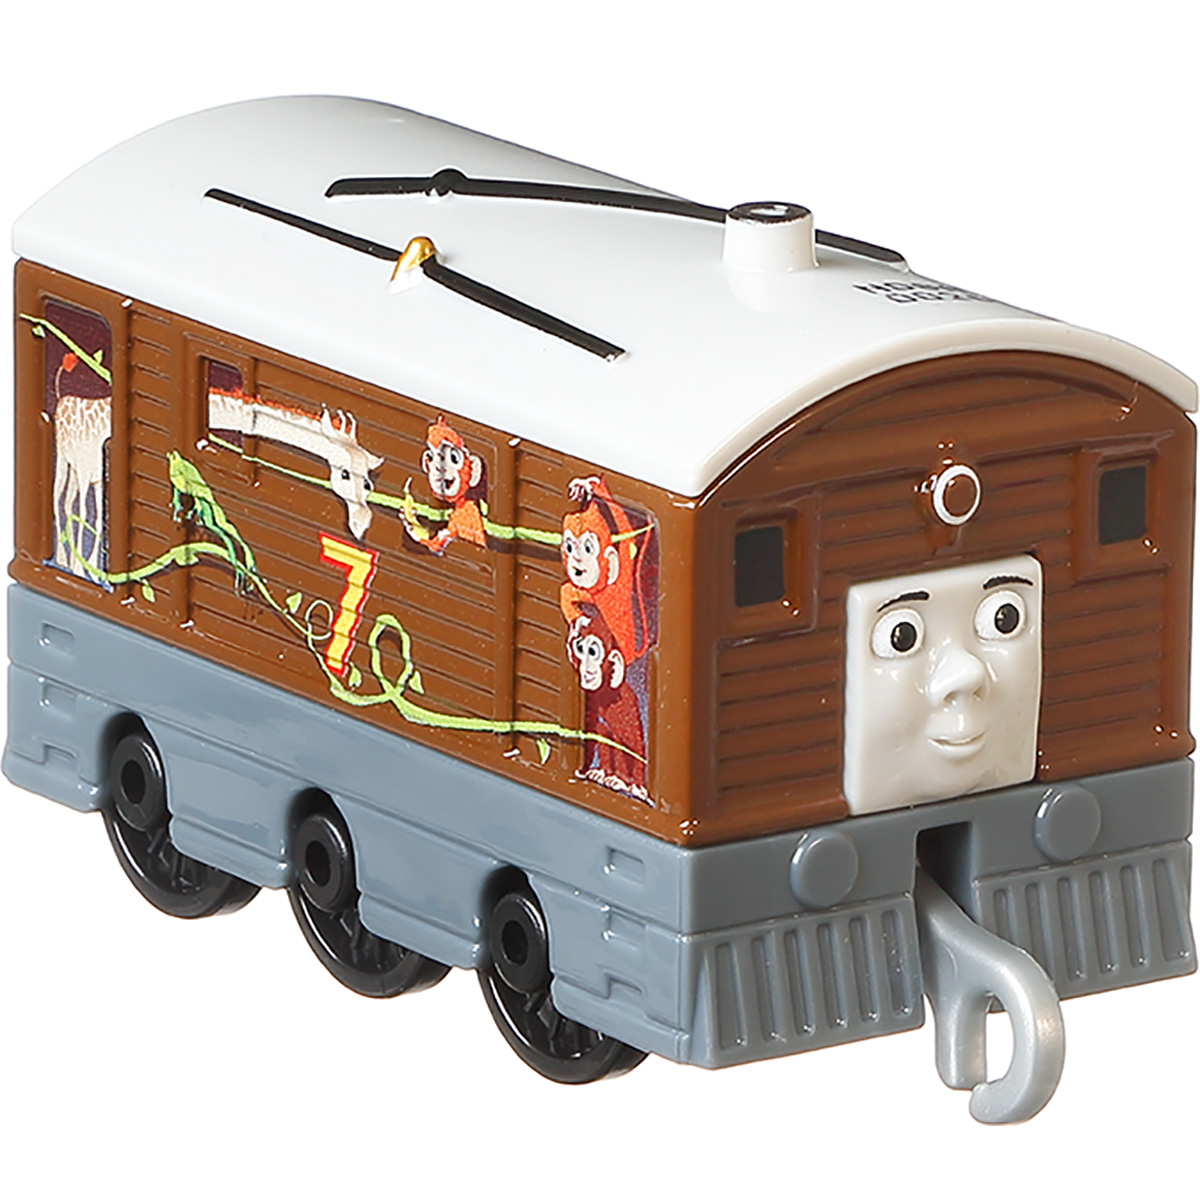 Trenulet Thomas and Friends Safari, Toby GRT92